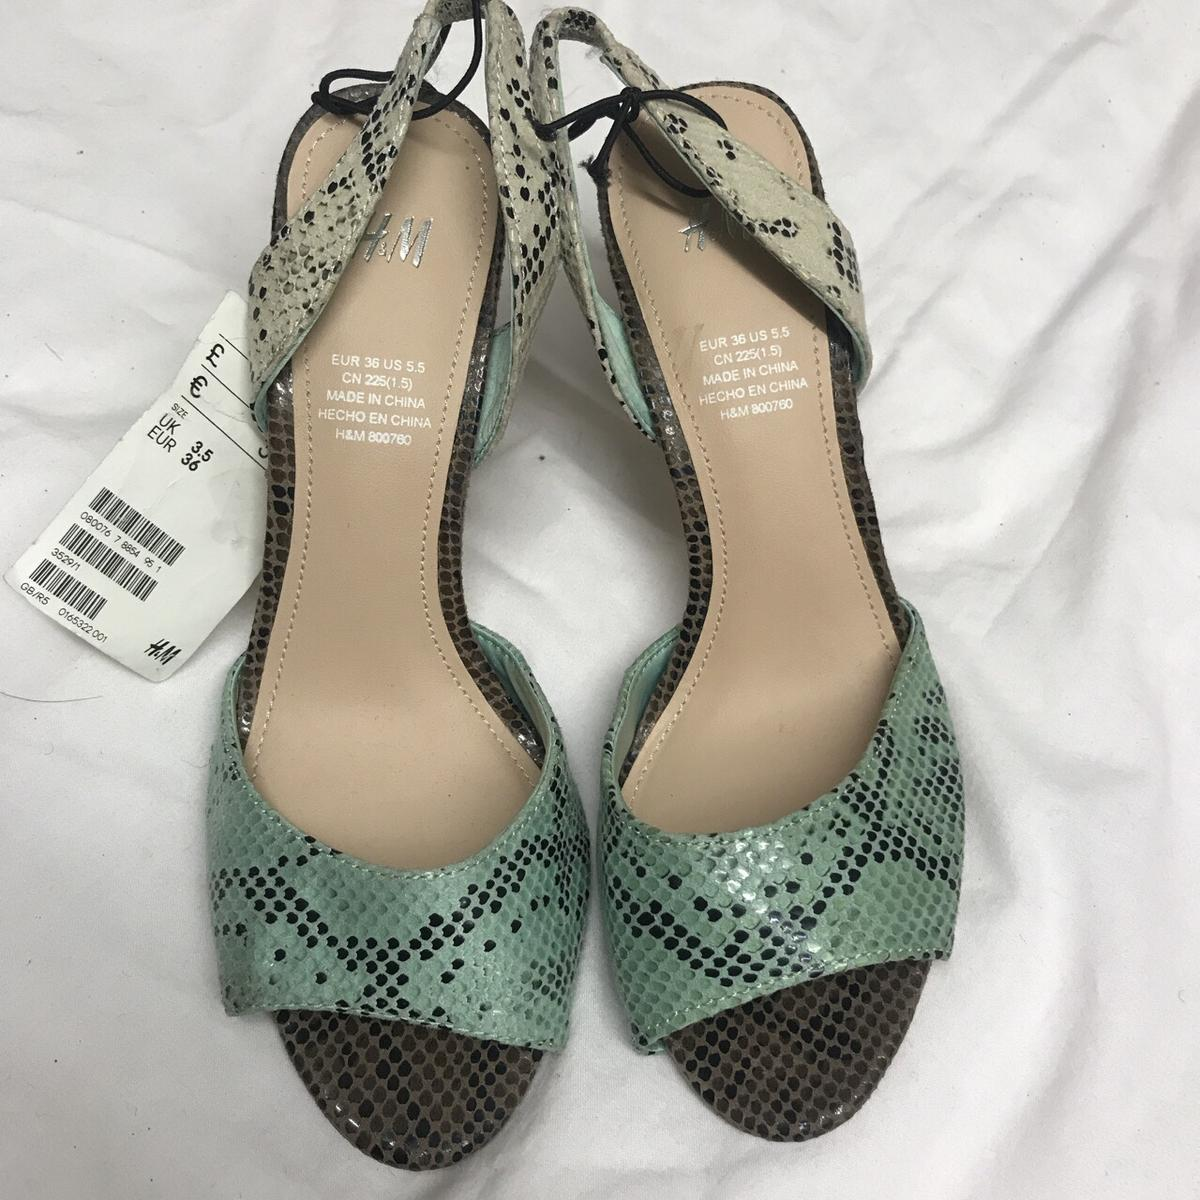 9625b39e61 Size 3 ladies shoes brand new in IG2 Redbridge for £10.00 for sale - Shpock